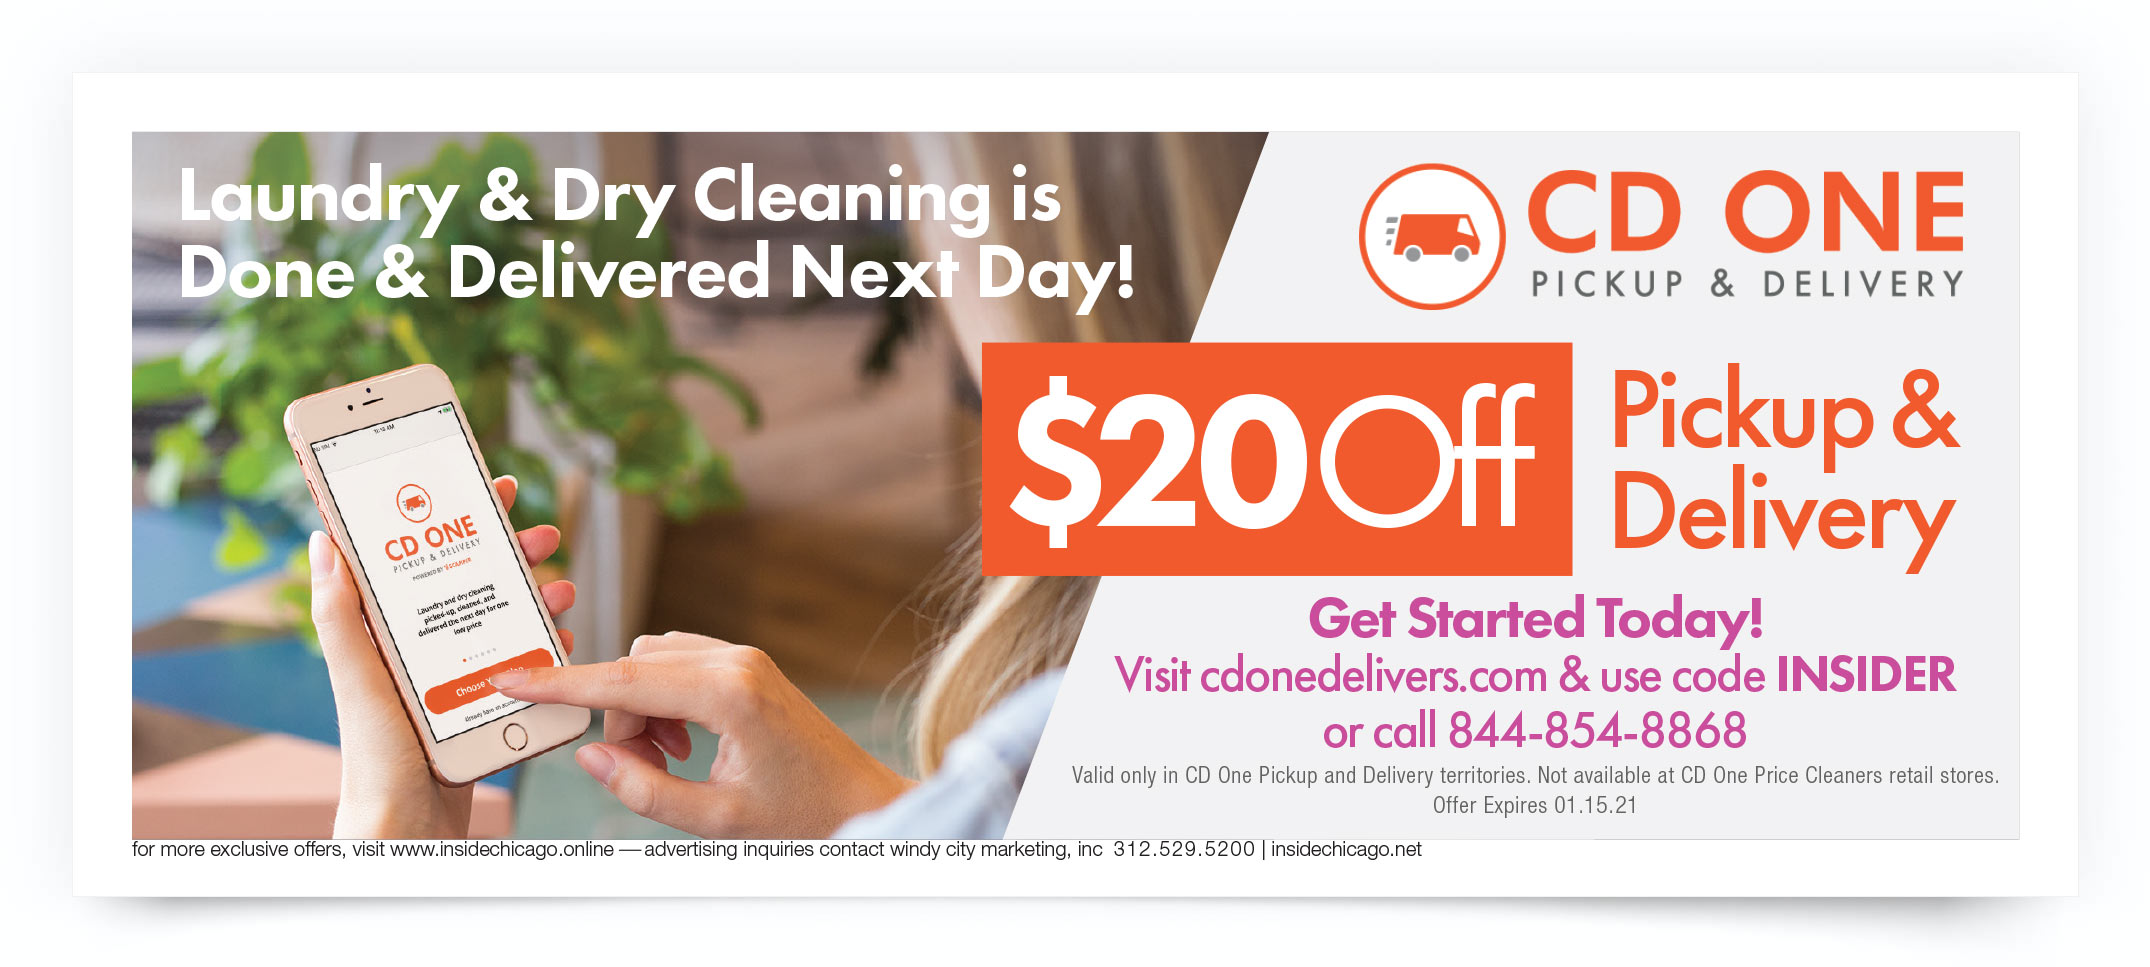 CD One Price Cleaners Chicago Coupon Intro